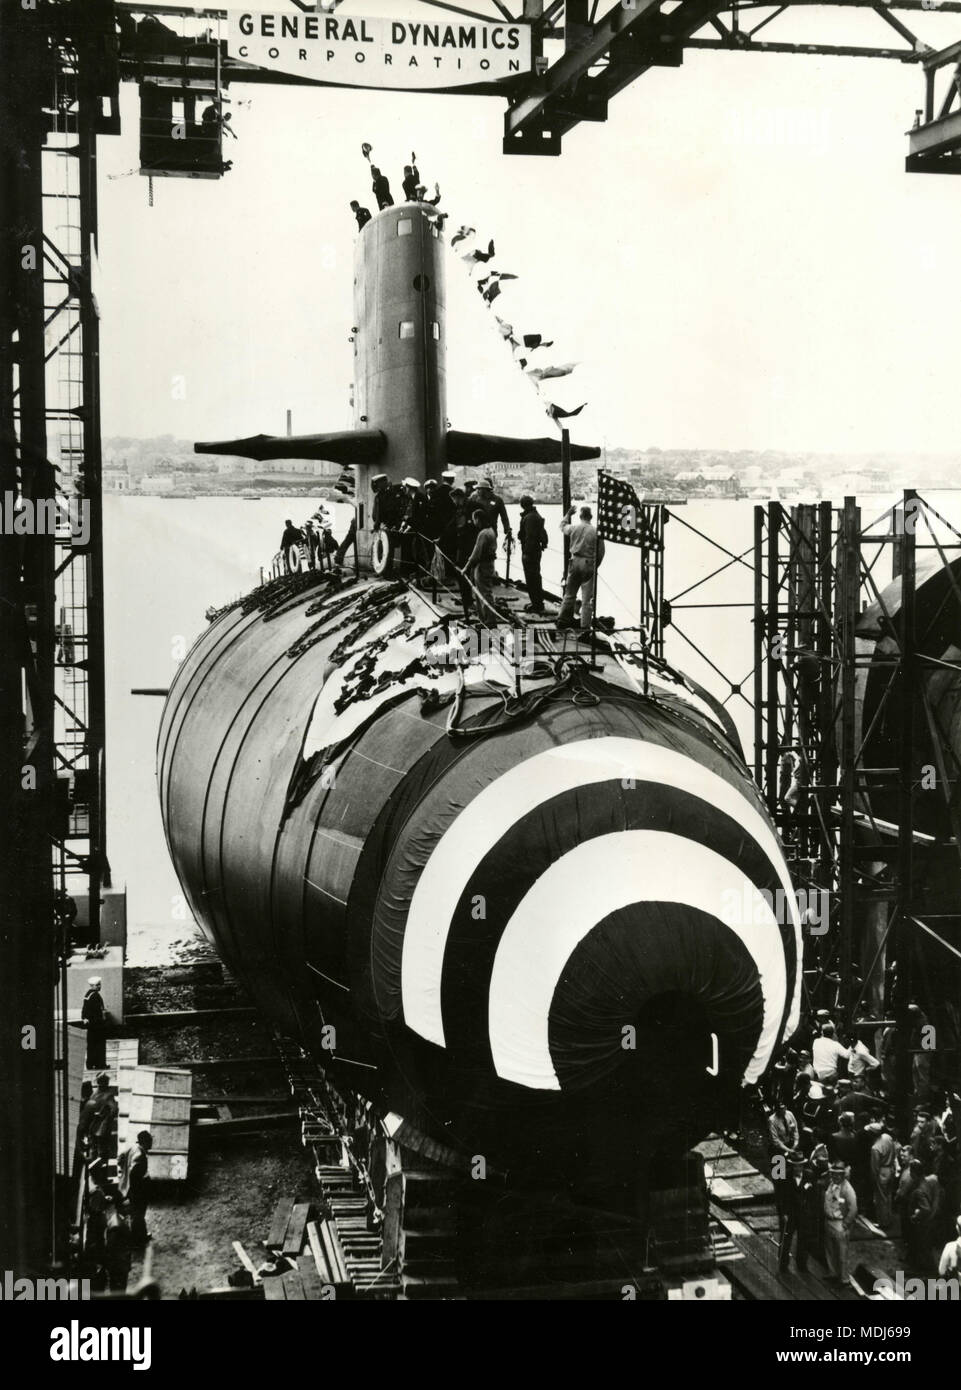 Launching of nuclear-powered submarine Skipjack, Groton, Connecticut, USA 1958 - Stock Image